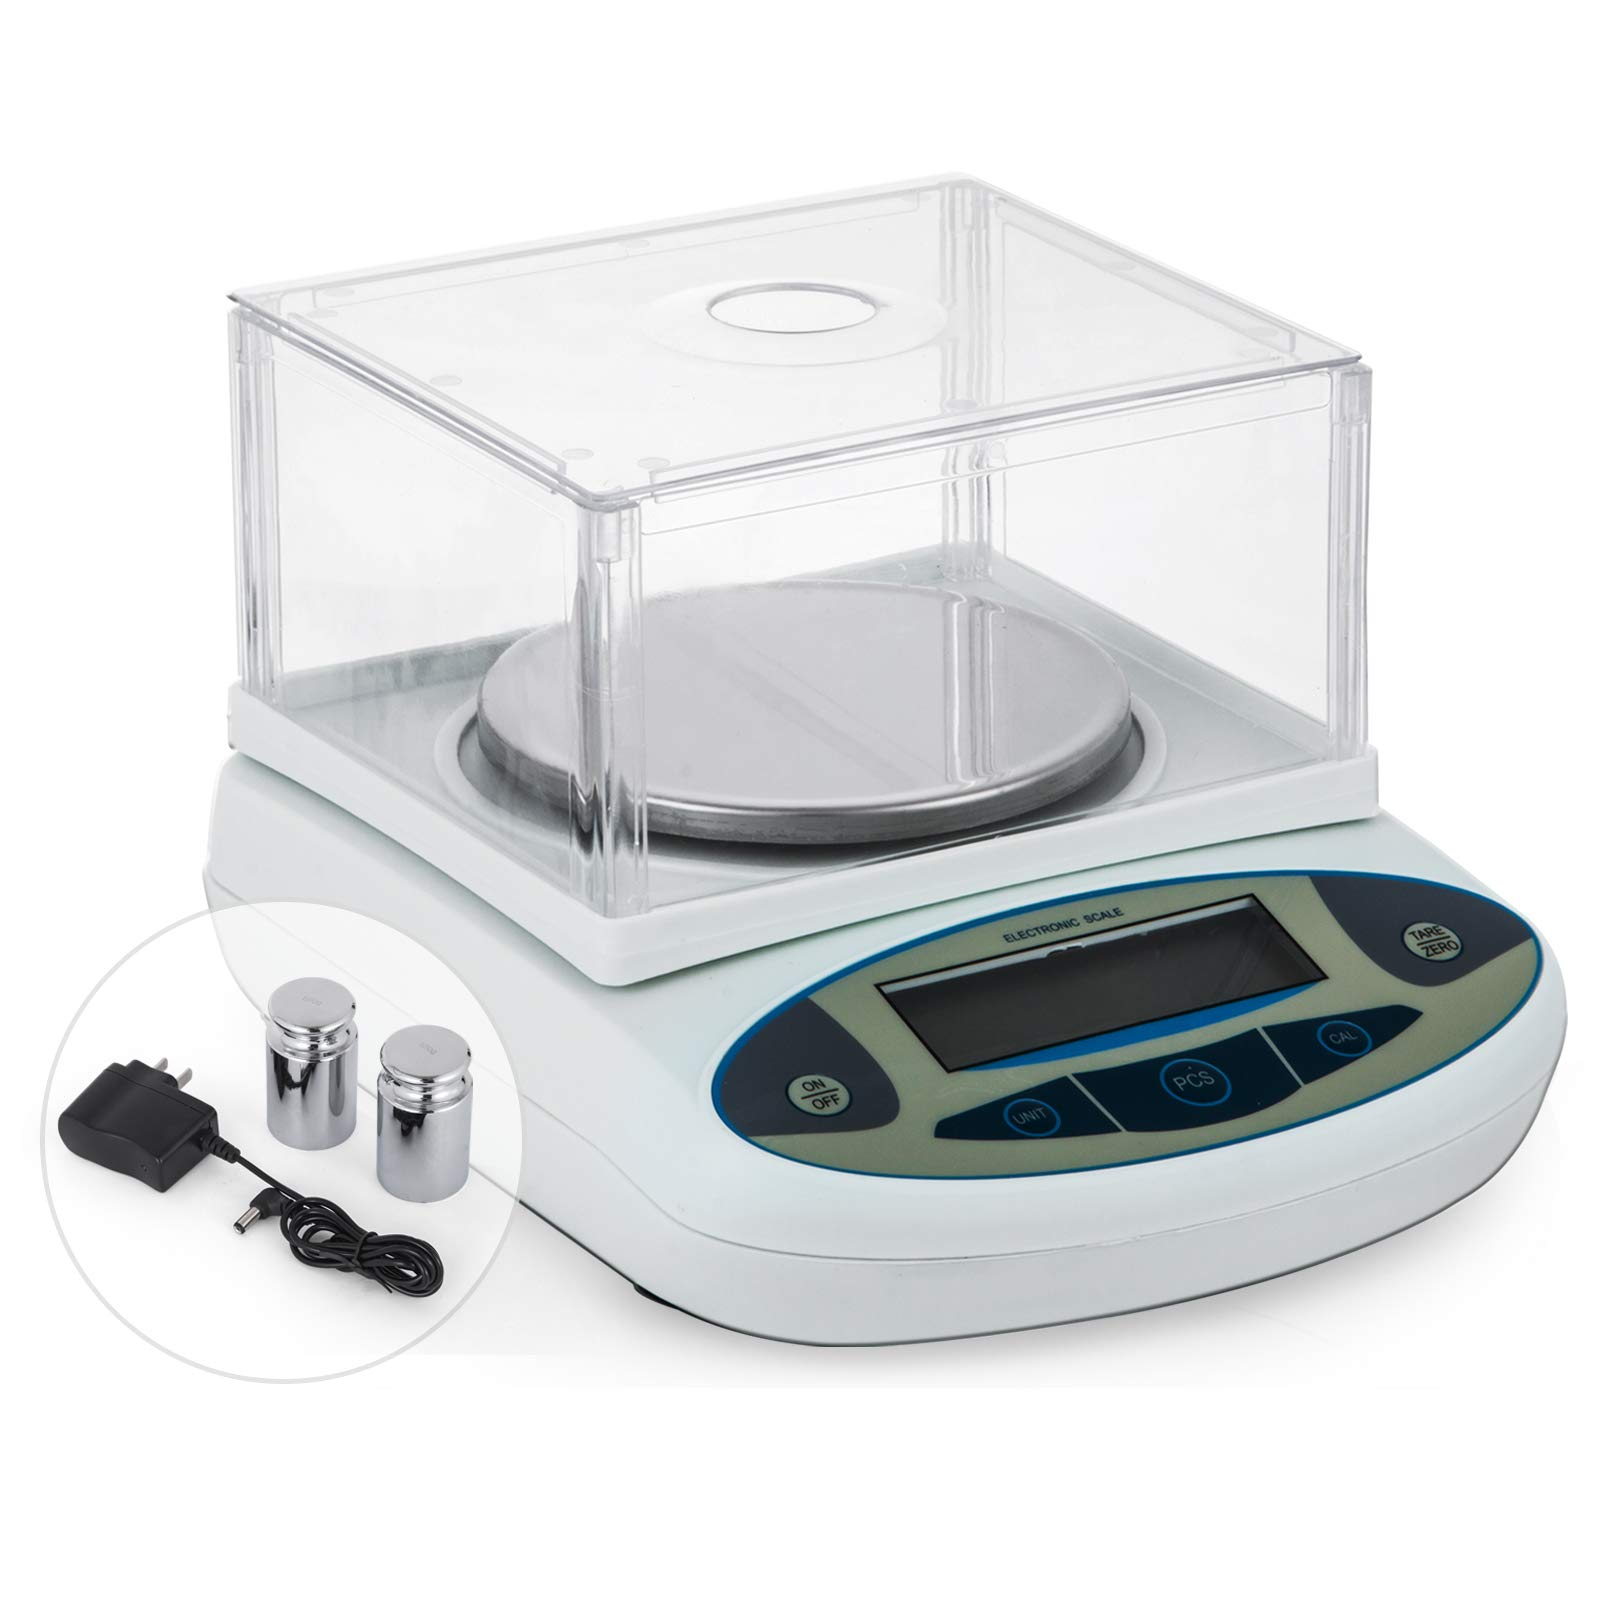 Happybuy Analytical Balance 2000g/0.01g High Precision Lab Digital Analytical Balance Jewelry Scale Jewelry Scales Kitchen Precision Weighing Electronic Scales with Wind Shield (2000g, 0.01g)